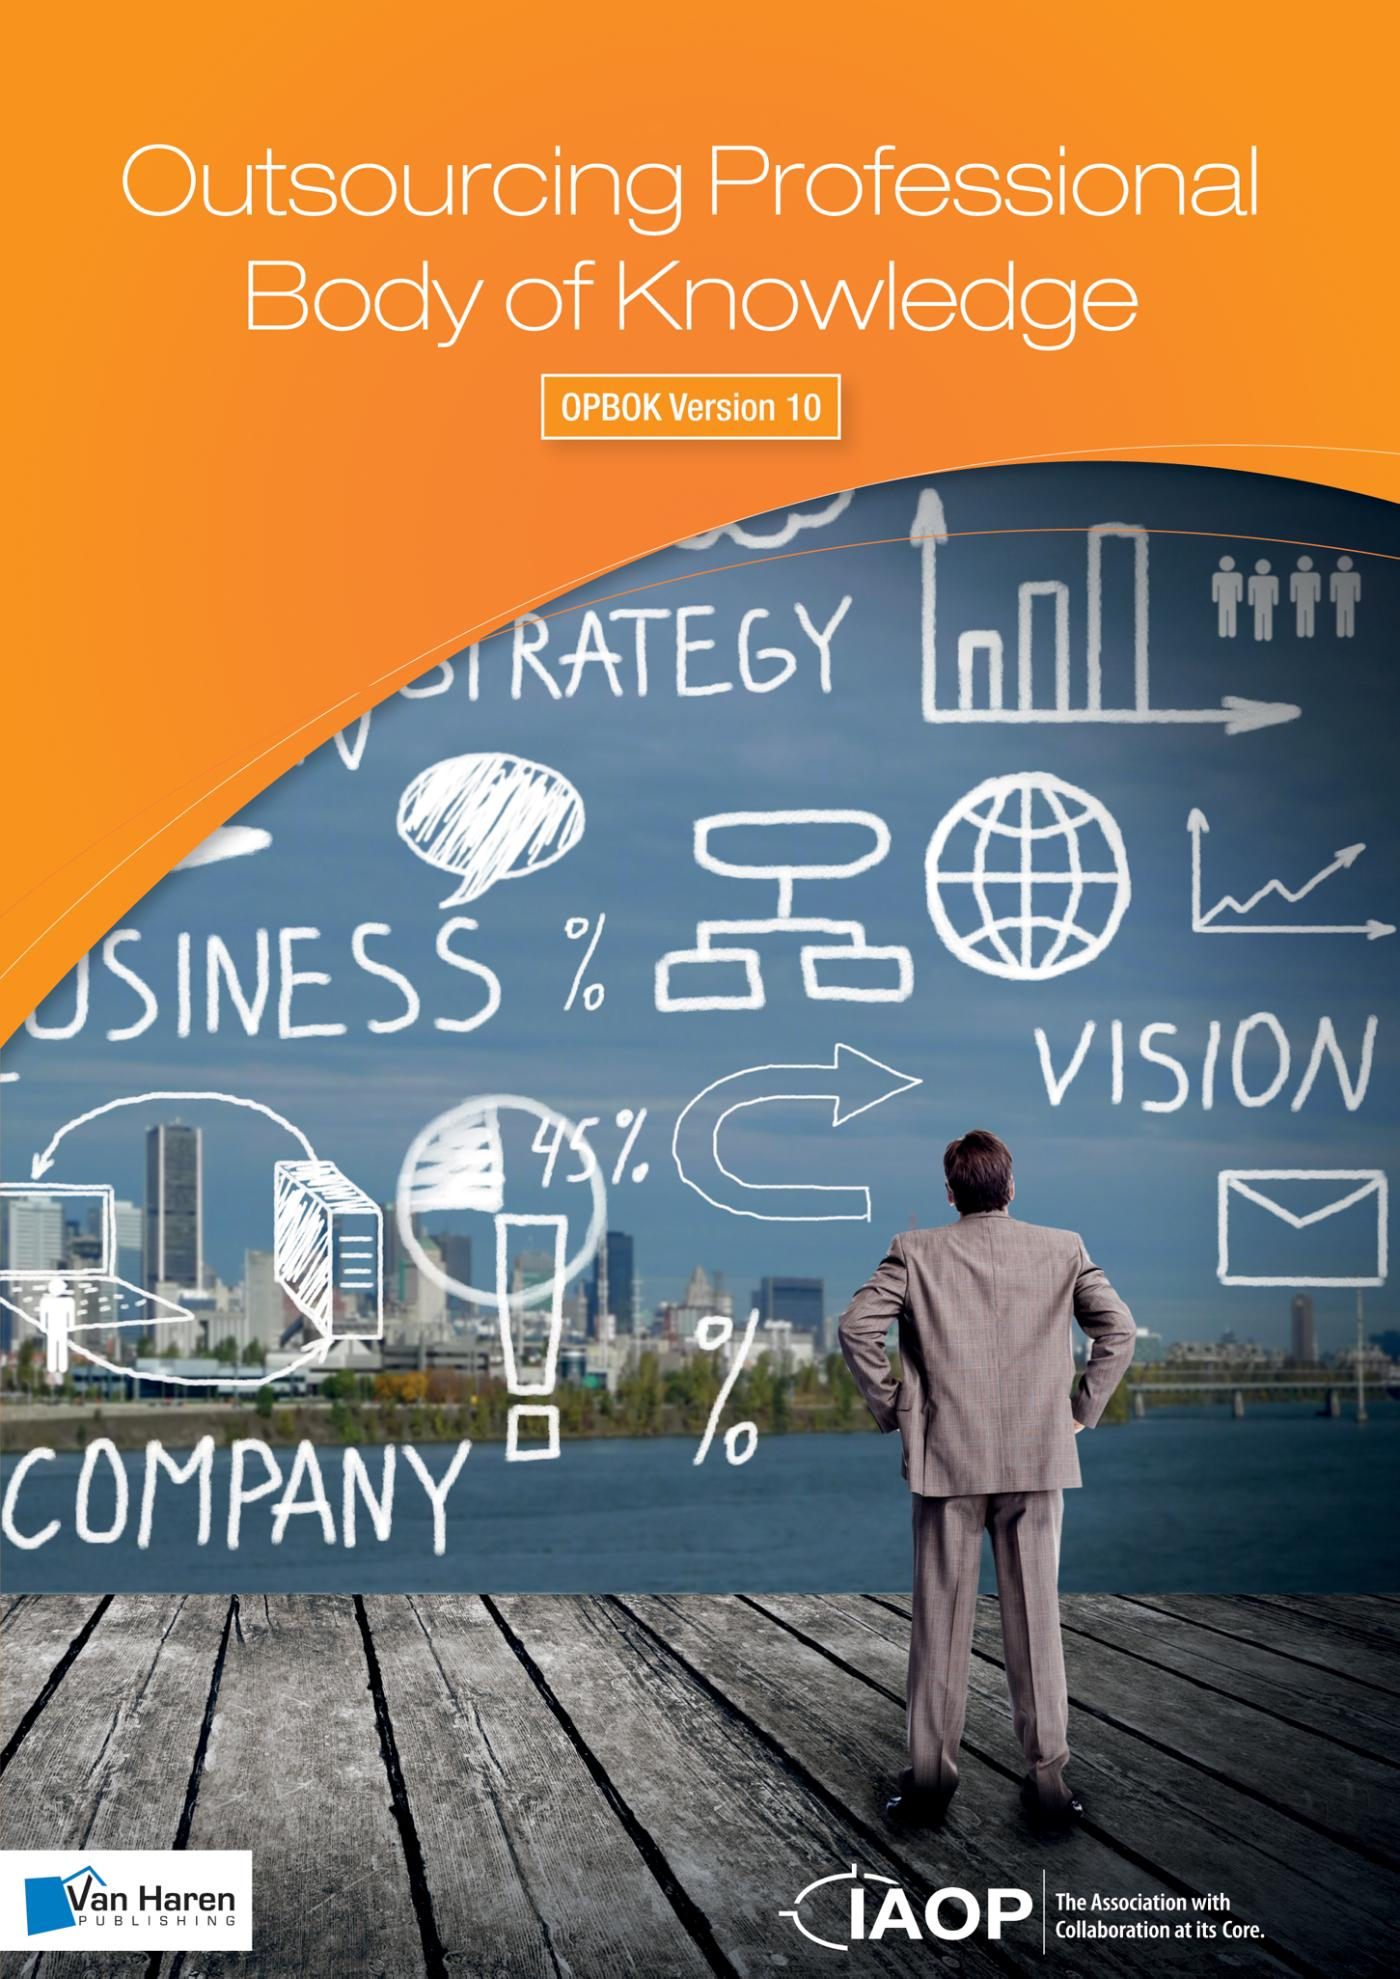 Outsourcing professional body of knowledge; OPBOK Version 10